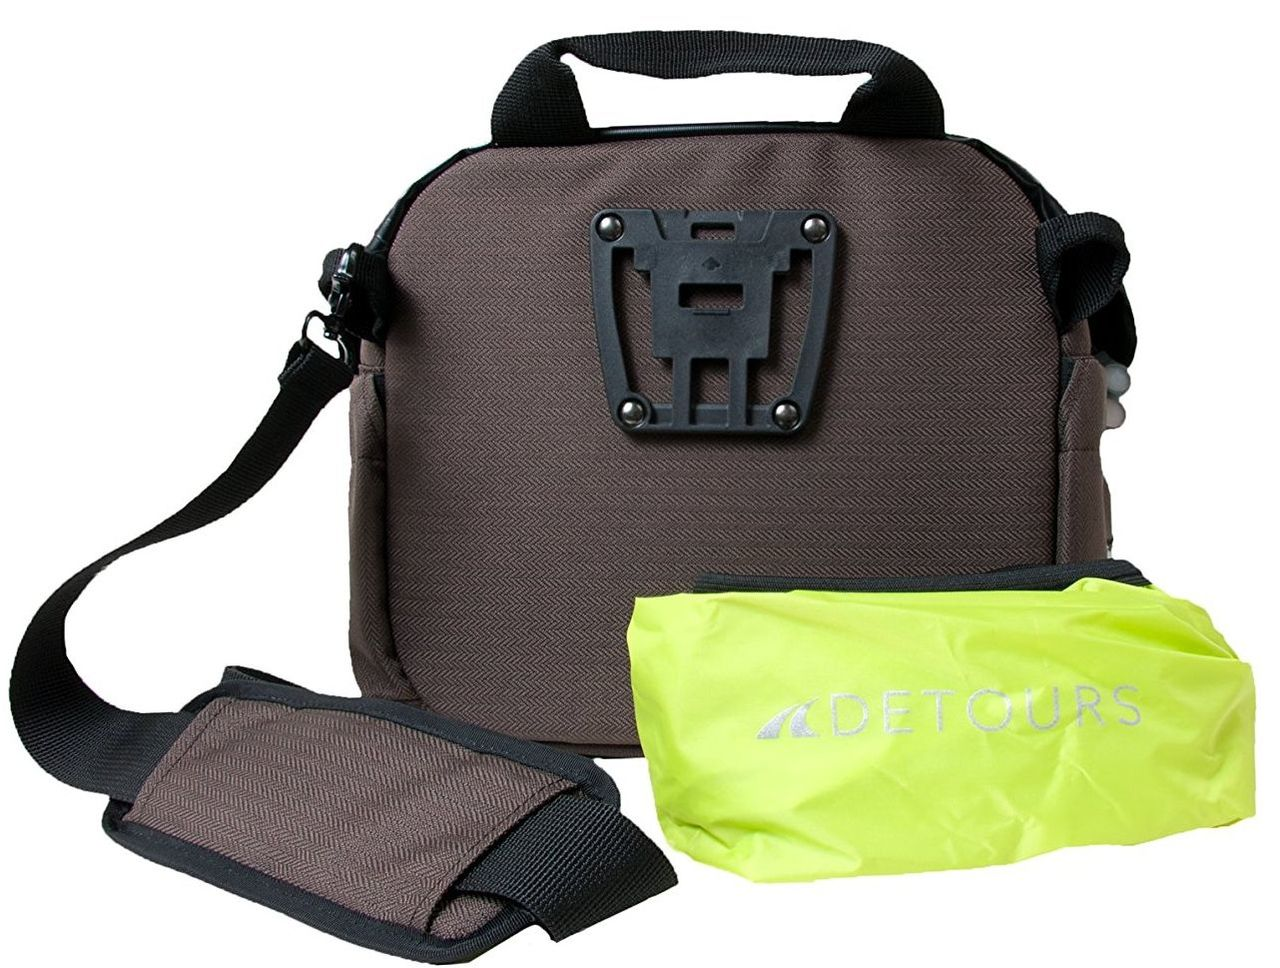 Picture of Detours The Sodo Bag for bike touring and commuting